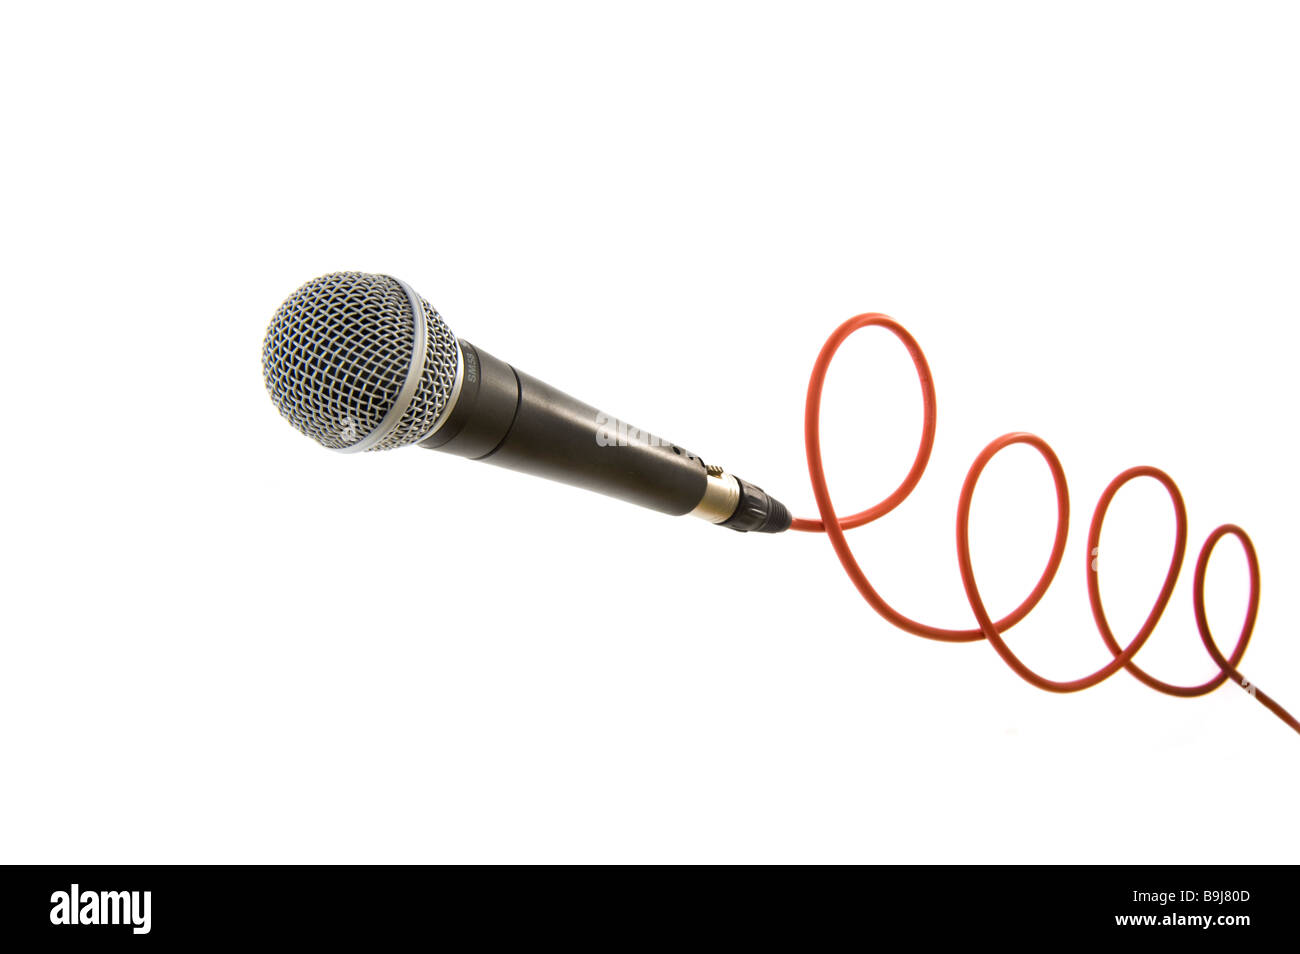 microphone micro mike mic mikrophone with red line wire cable strip line connect connection music sing singer vision - Stock Image